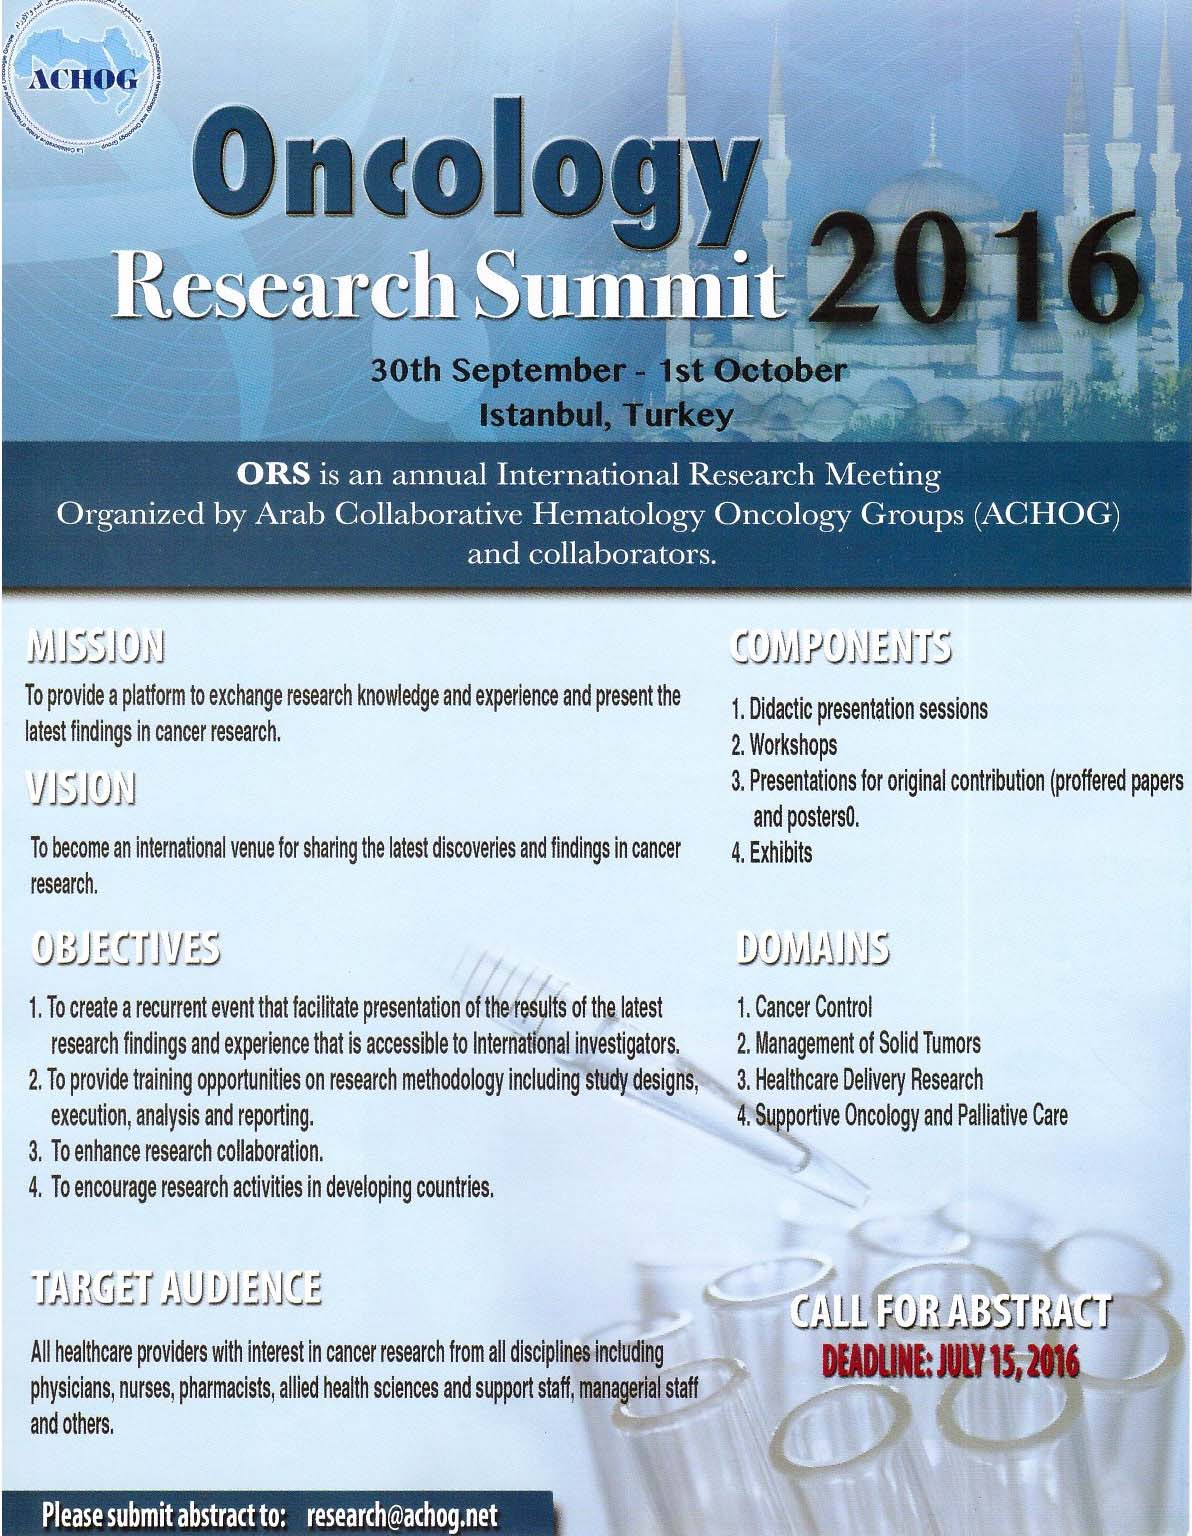 Oncology Research Summit 2016